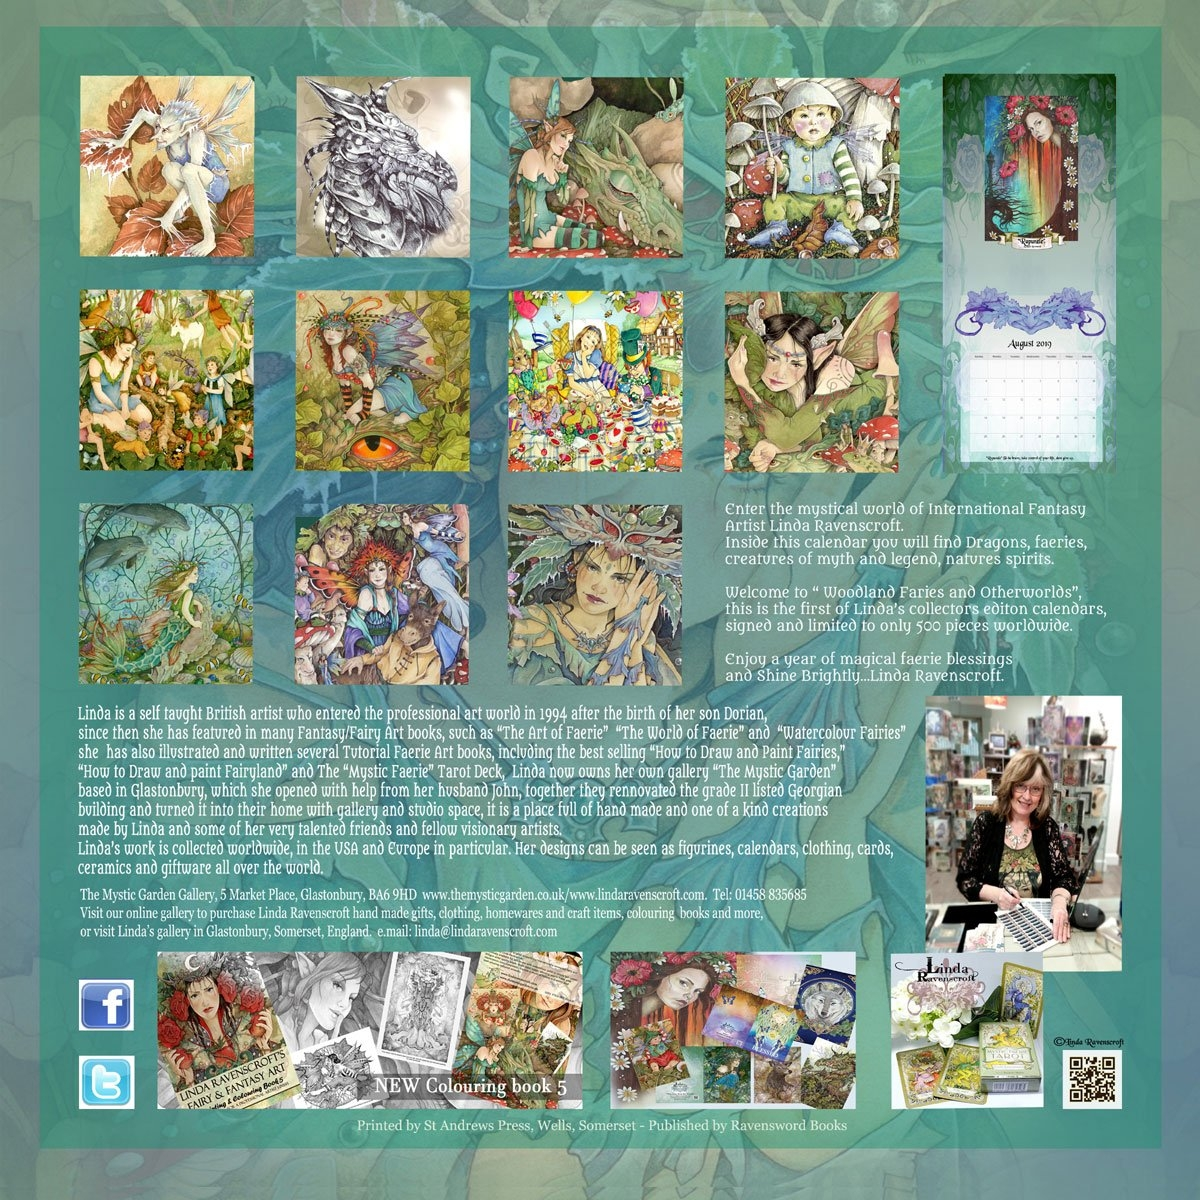 2019 Woodland Faeries & Otherworlds Calendar – Collectors Edition Calendar 2019 Artist